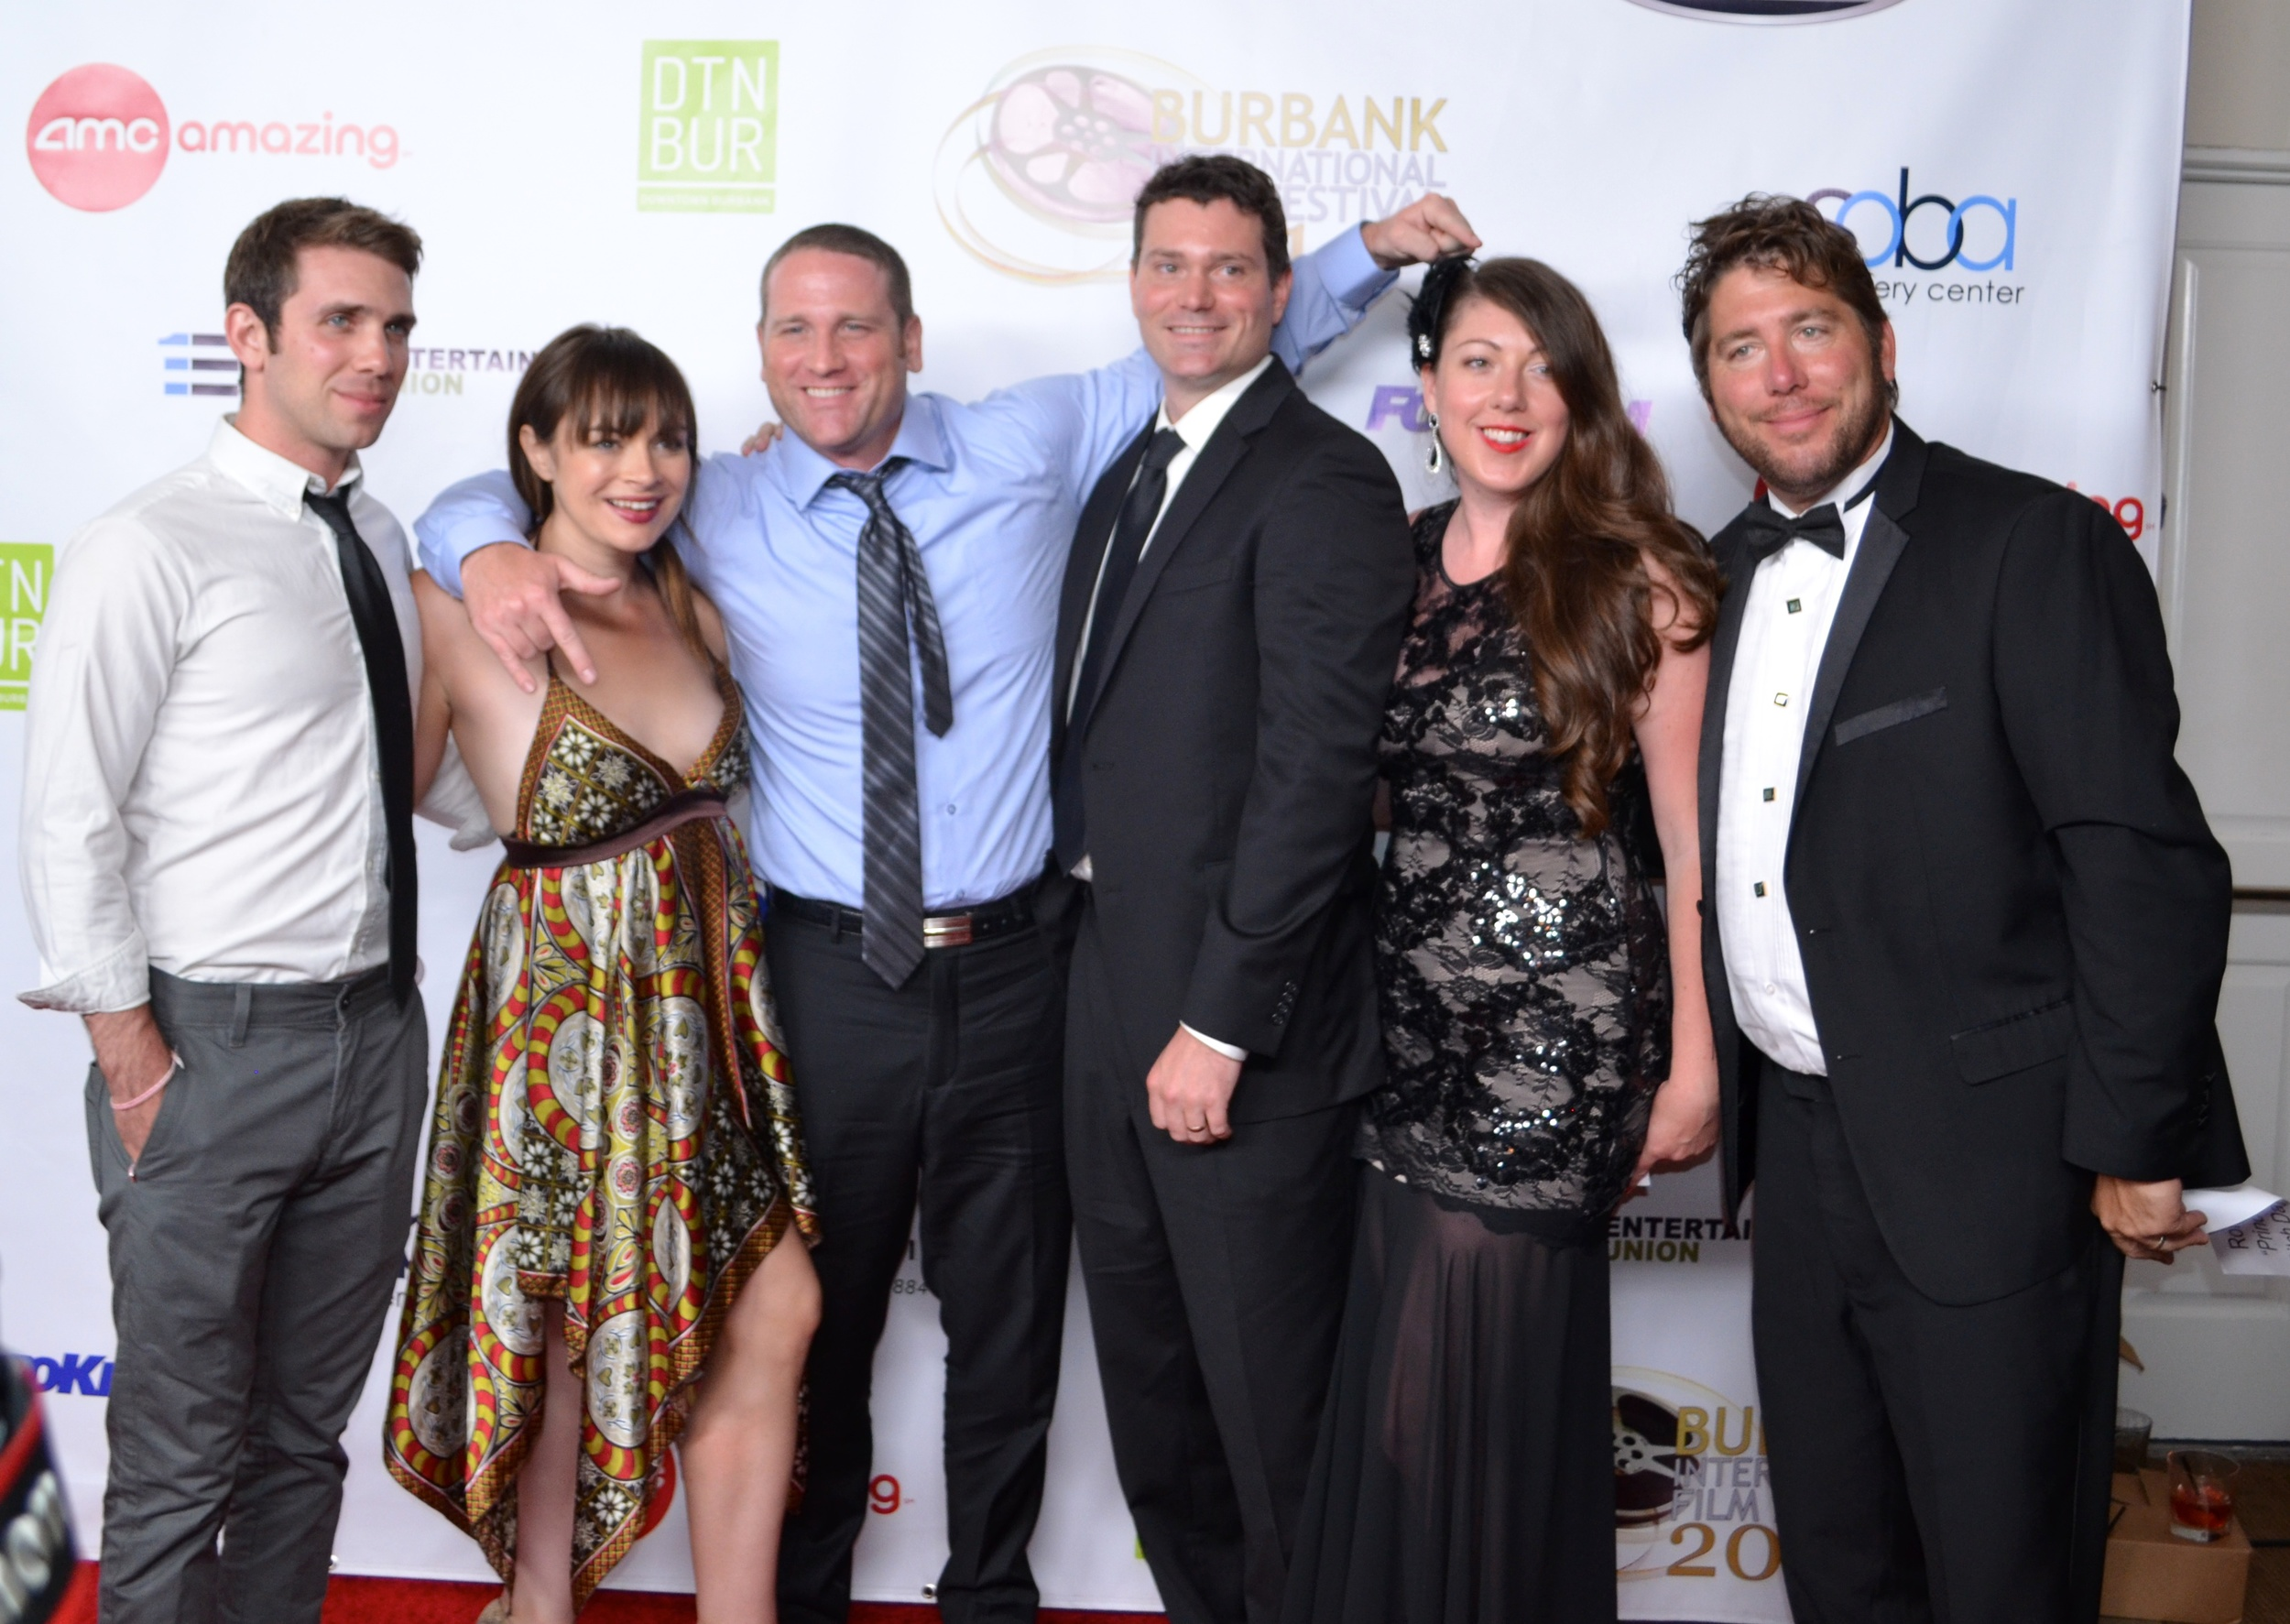 Left to right: Zach Silverman (Mike), Katy Foley (Jenny), Daniel P. Coughlin (Writer), Ryan W. Coughlin (Writer), Megan Waters (Producer) and Ronald J. Burkard (Principal Gullman)